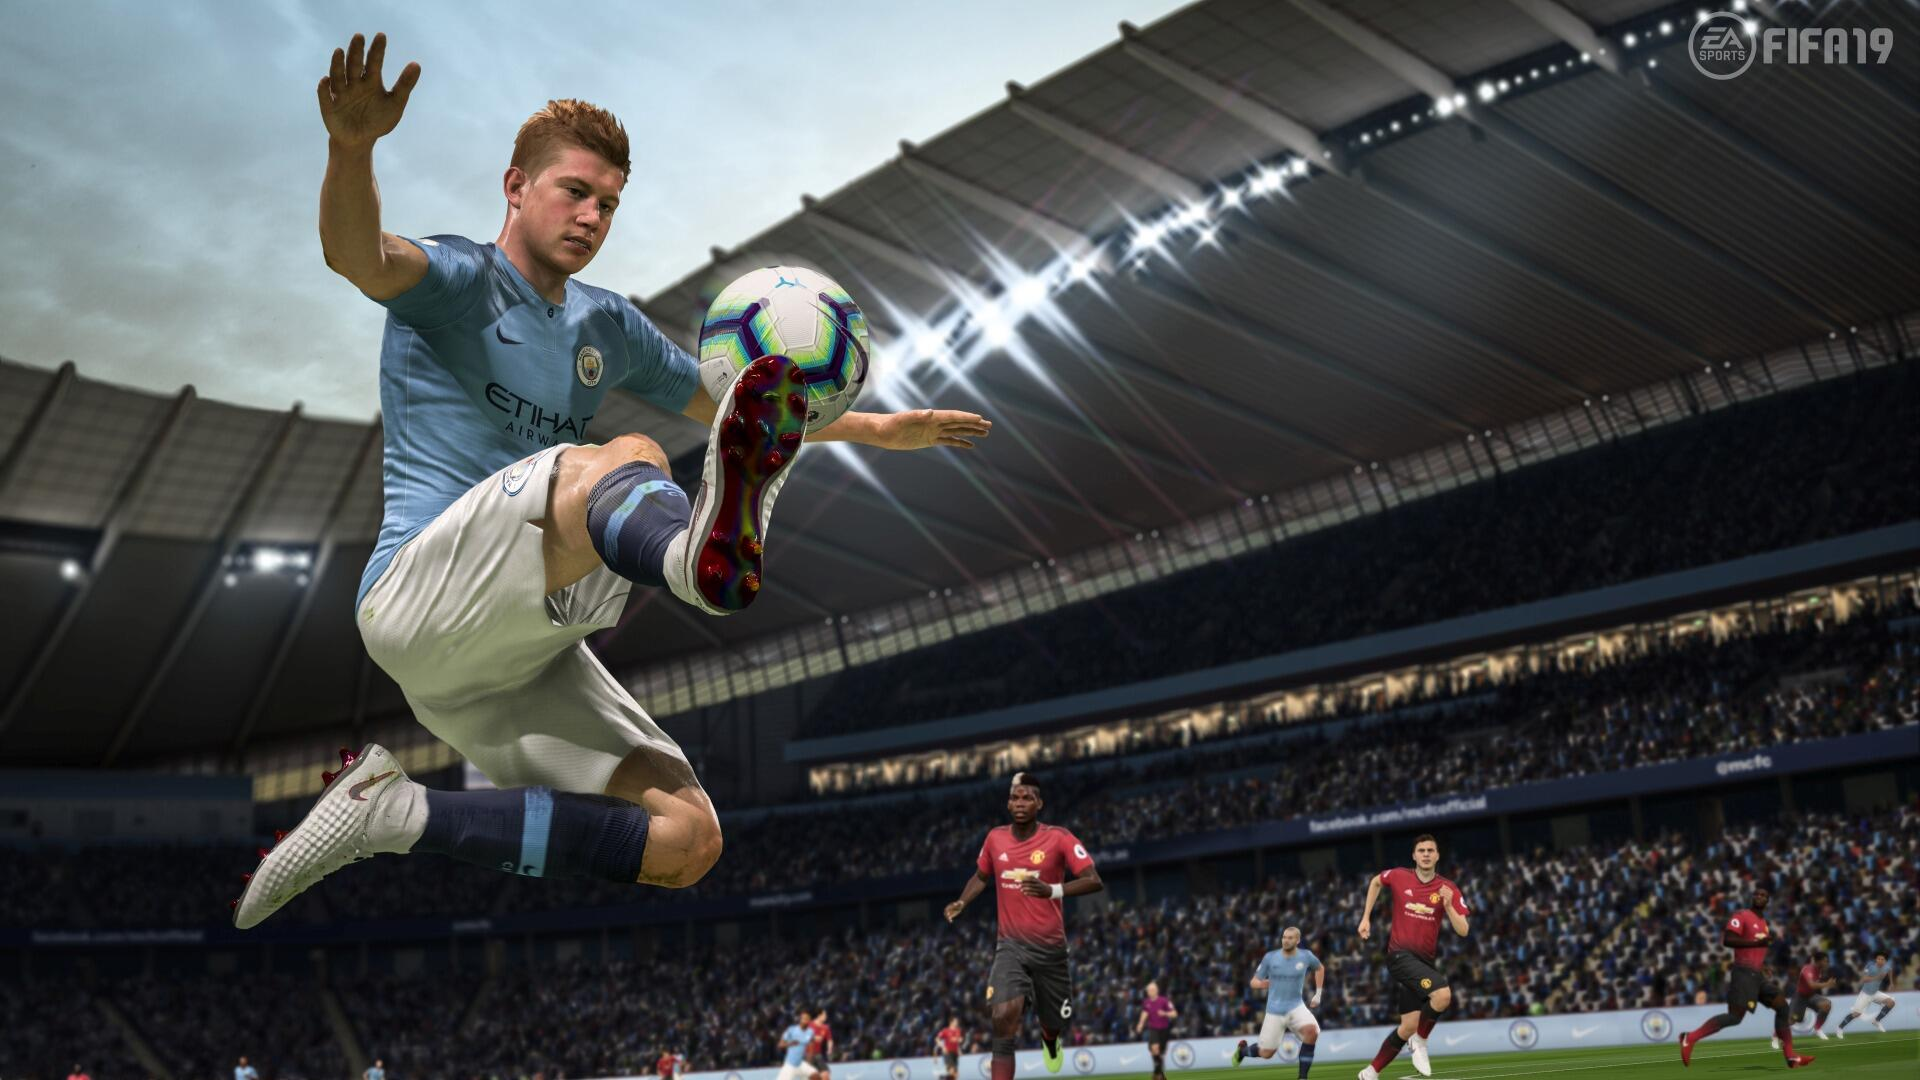 FIFA 19 Division Rivals Rewards - When is the Weekly Refresh?